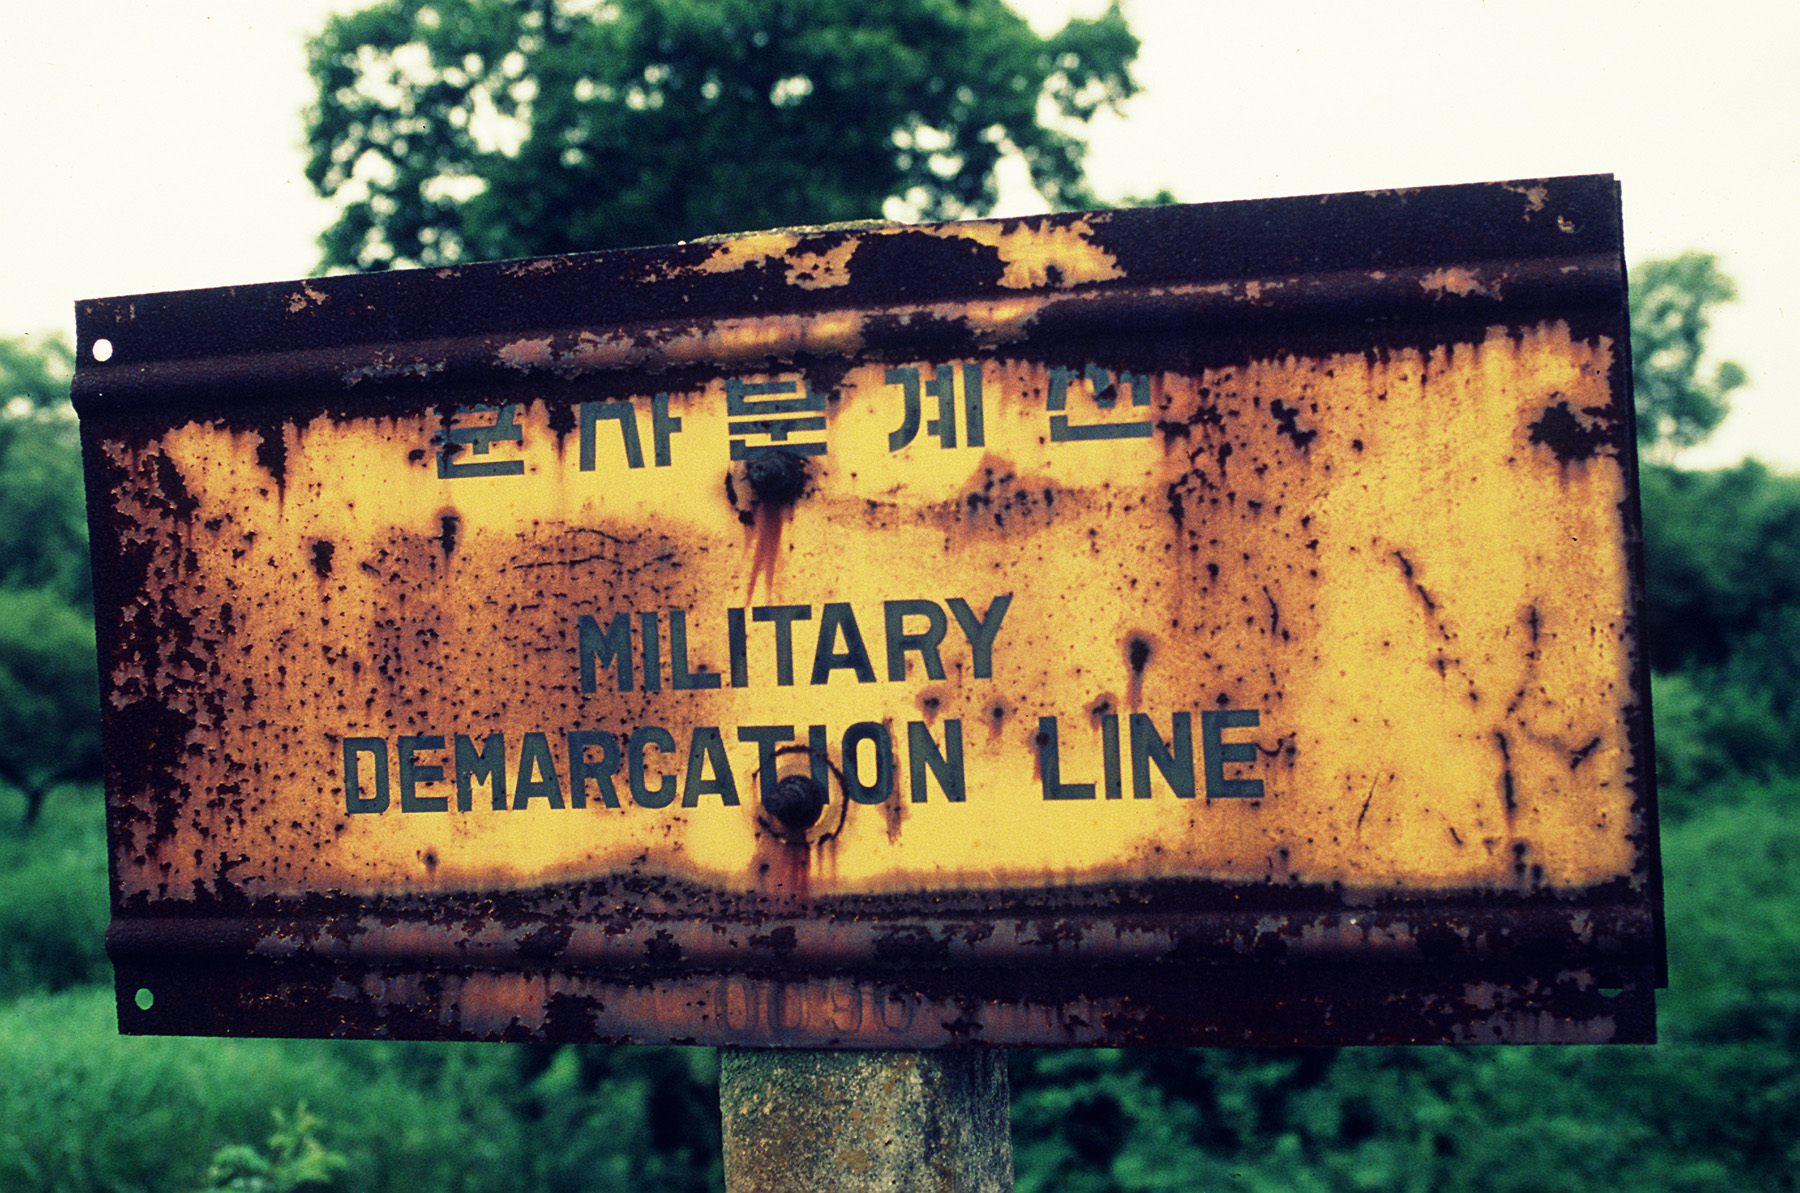 Photo_of_the_Military_Demarcation_Line_(MDL),_sign_located_in_the_woods_at_Pan_Mun_Jom_(DMZ),_separating_North_and_South_Korea_F-3203-SPT-94-000314-XX-0085.jpg